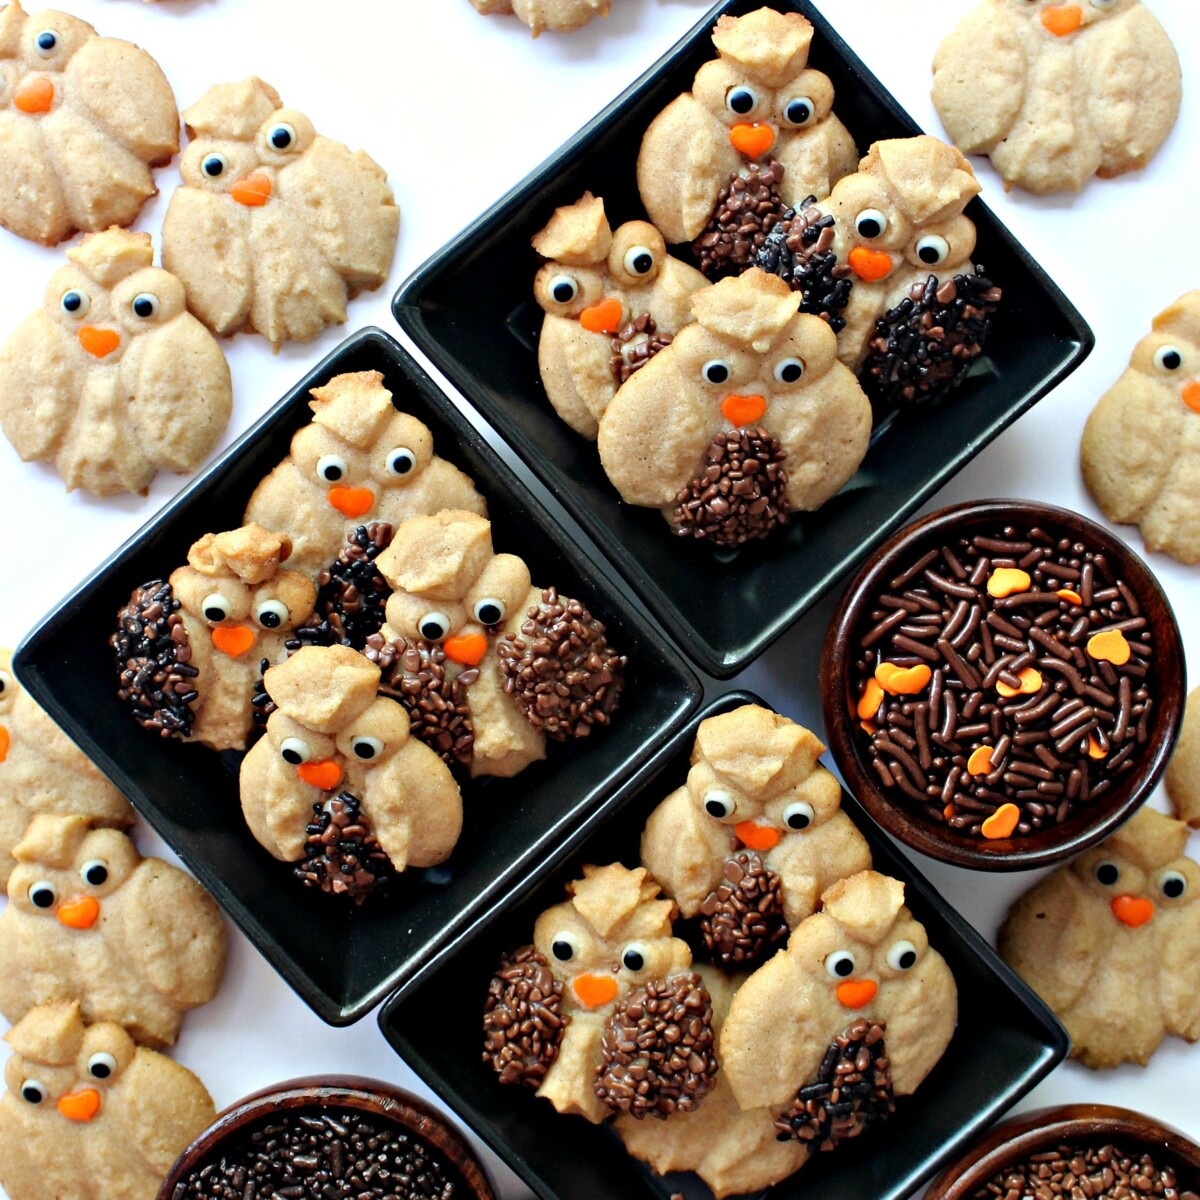 Decorated Cinnamon Spritz Owl Cookies in small black bowls with bowls of decorating sprinkles.